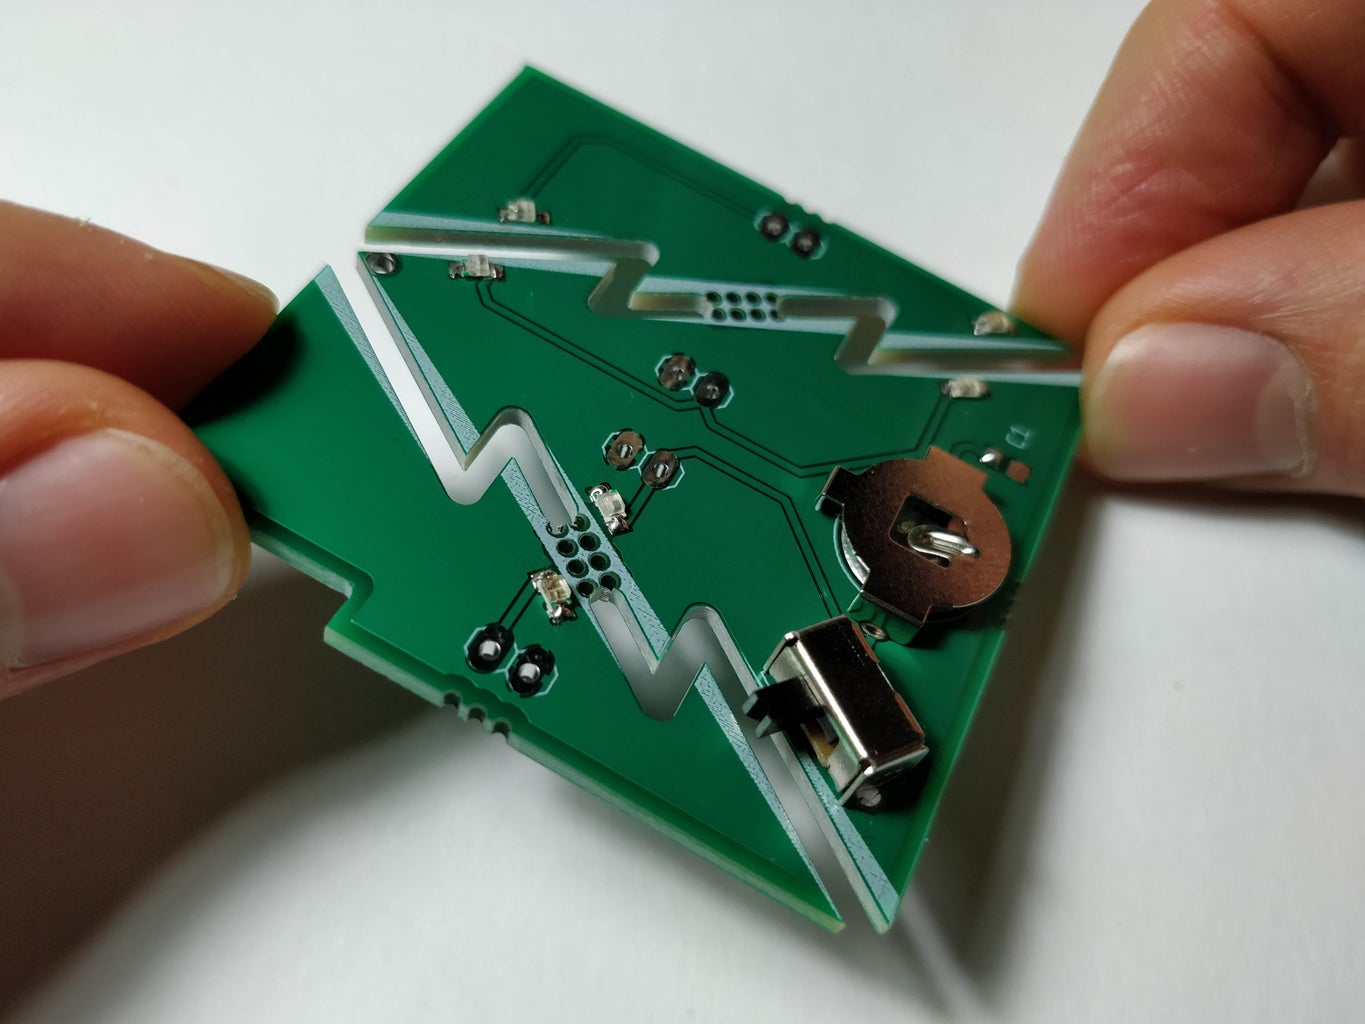 Soldering the PCB